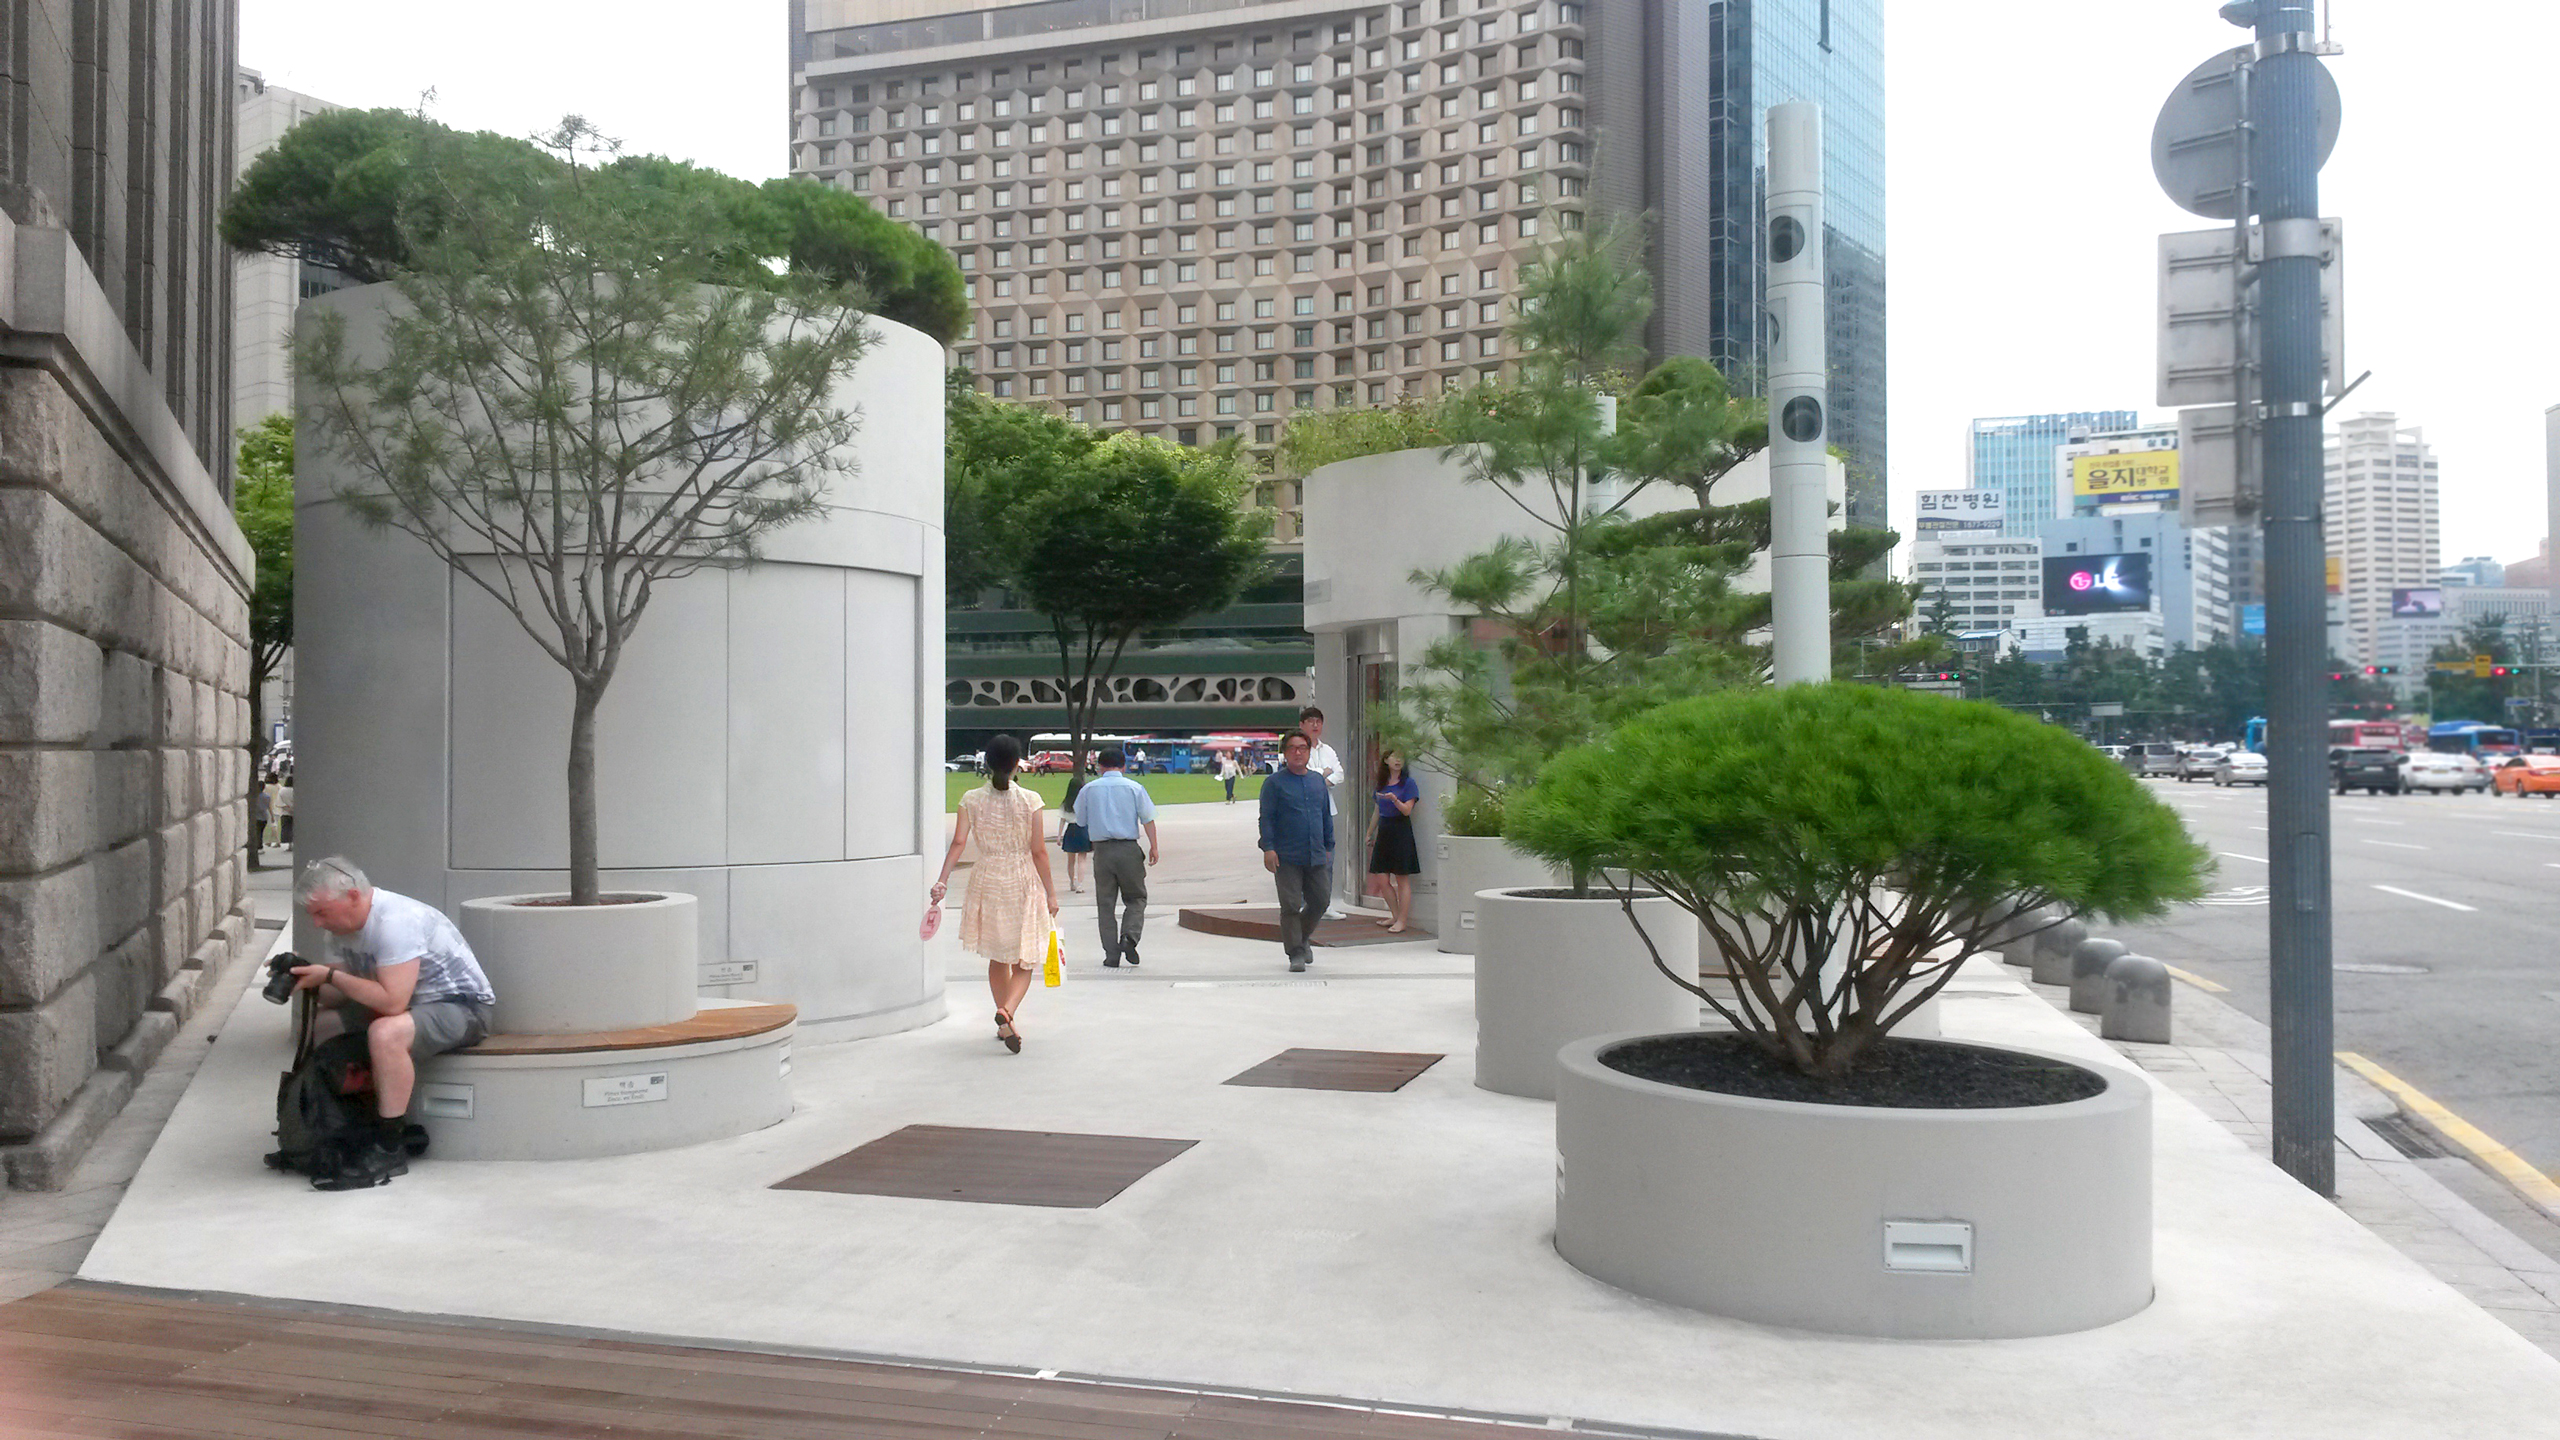 Info Garden gives a glimpse into the Seoul Skygarden